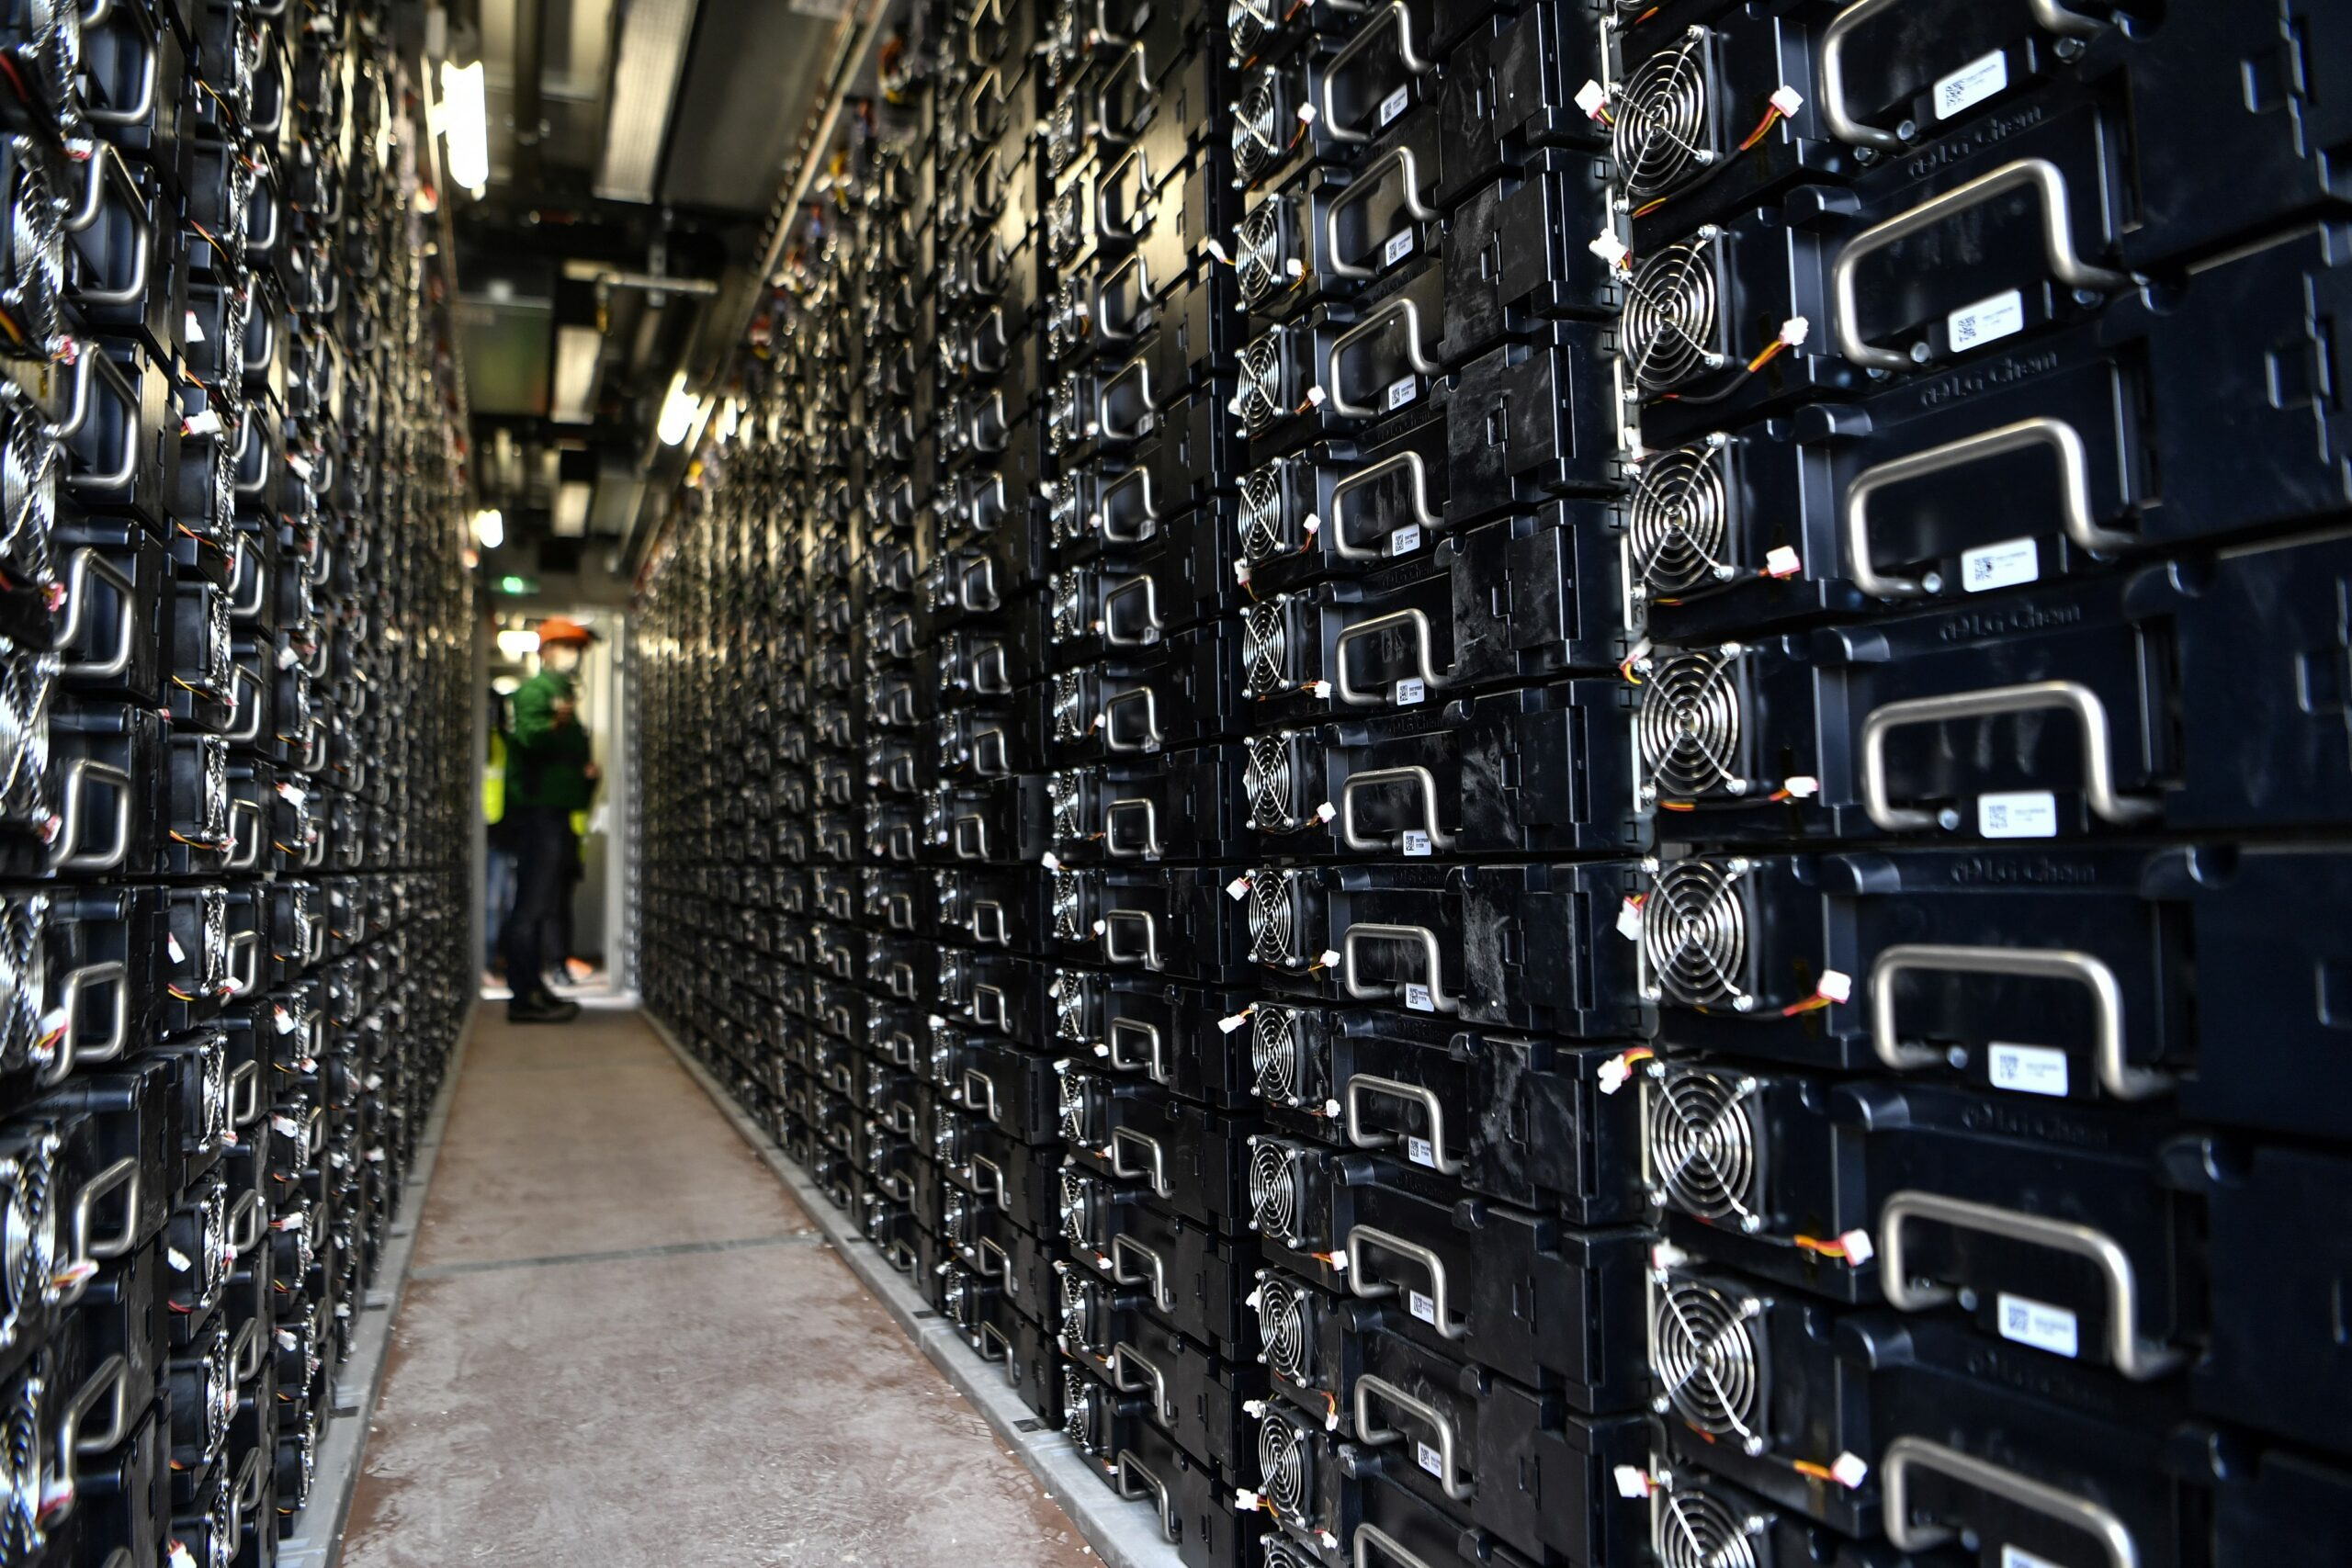 A worker controls batteries in an electricity storage container on Sept. 29, 2020 in Fontenelle near Dijon in France. Credit: Philippe Desmazes/AFP via Getty Images